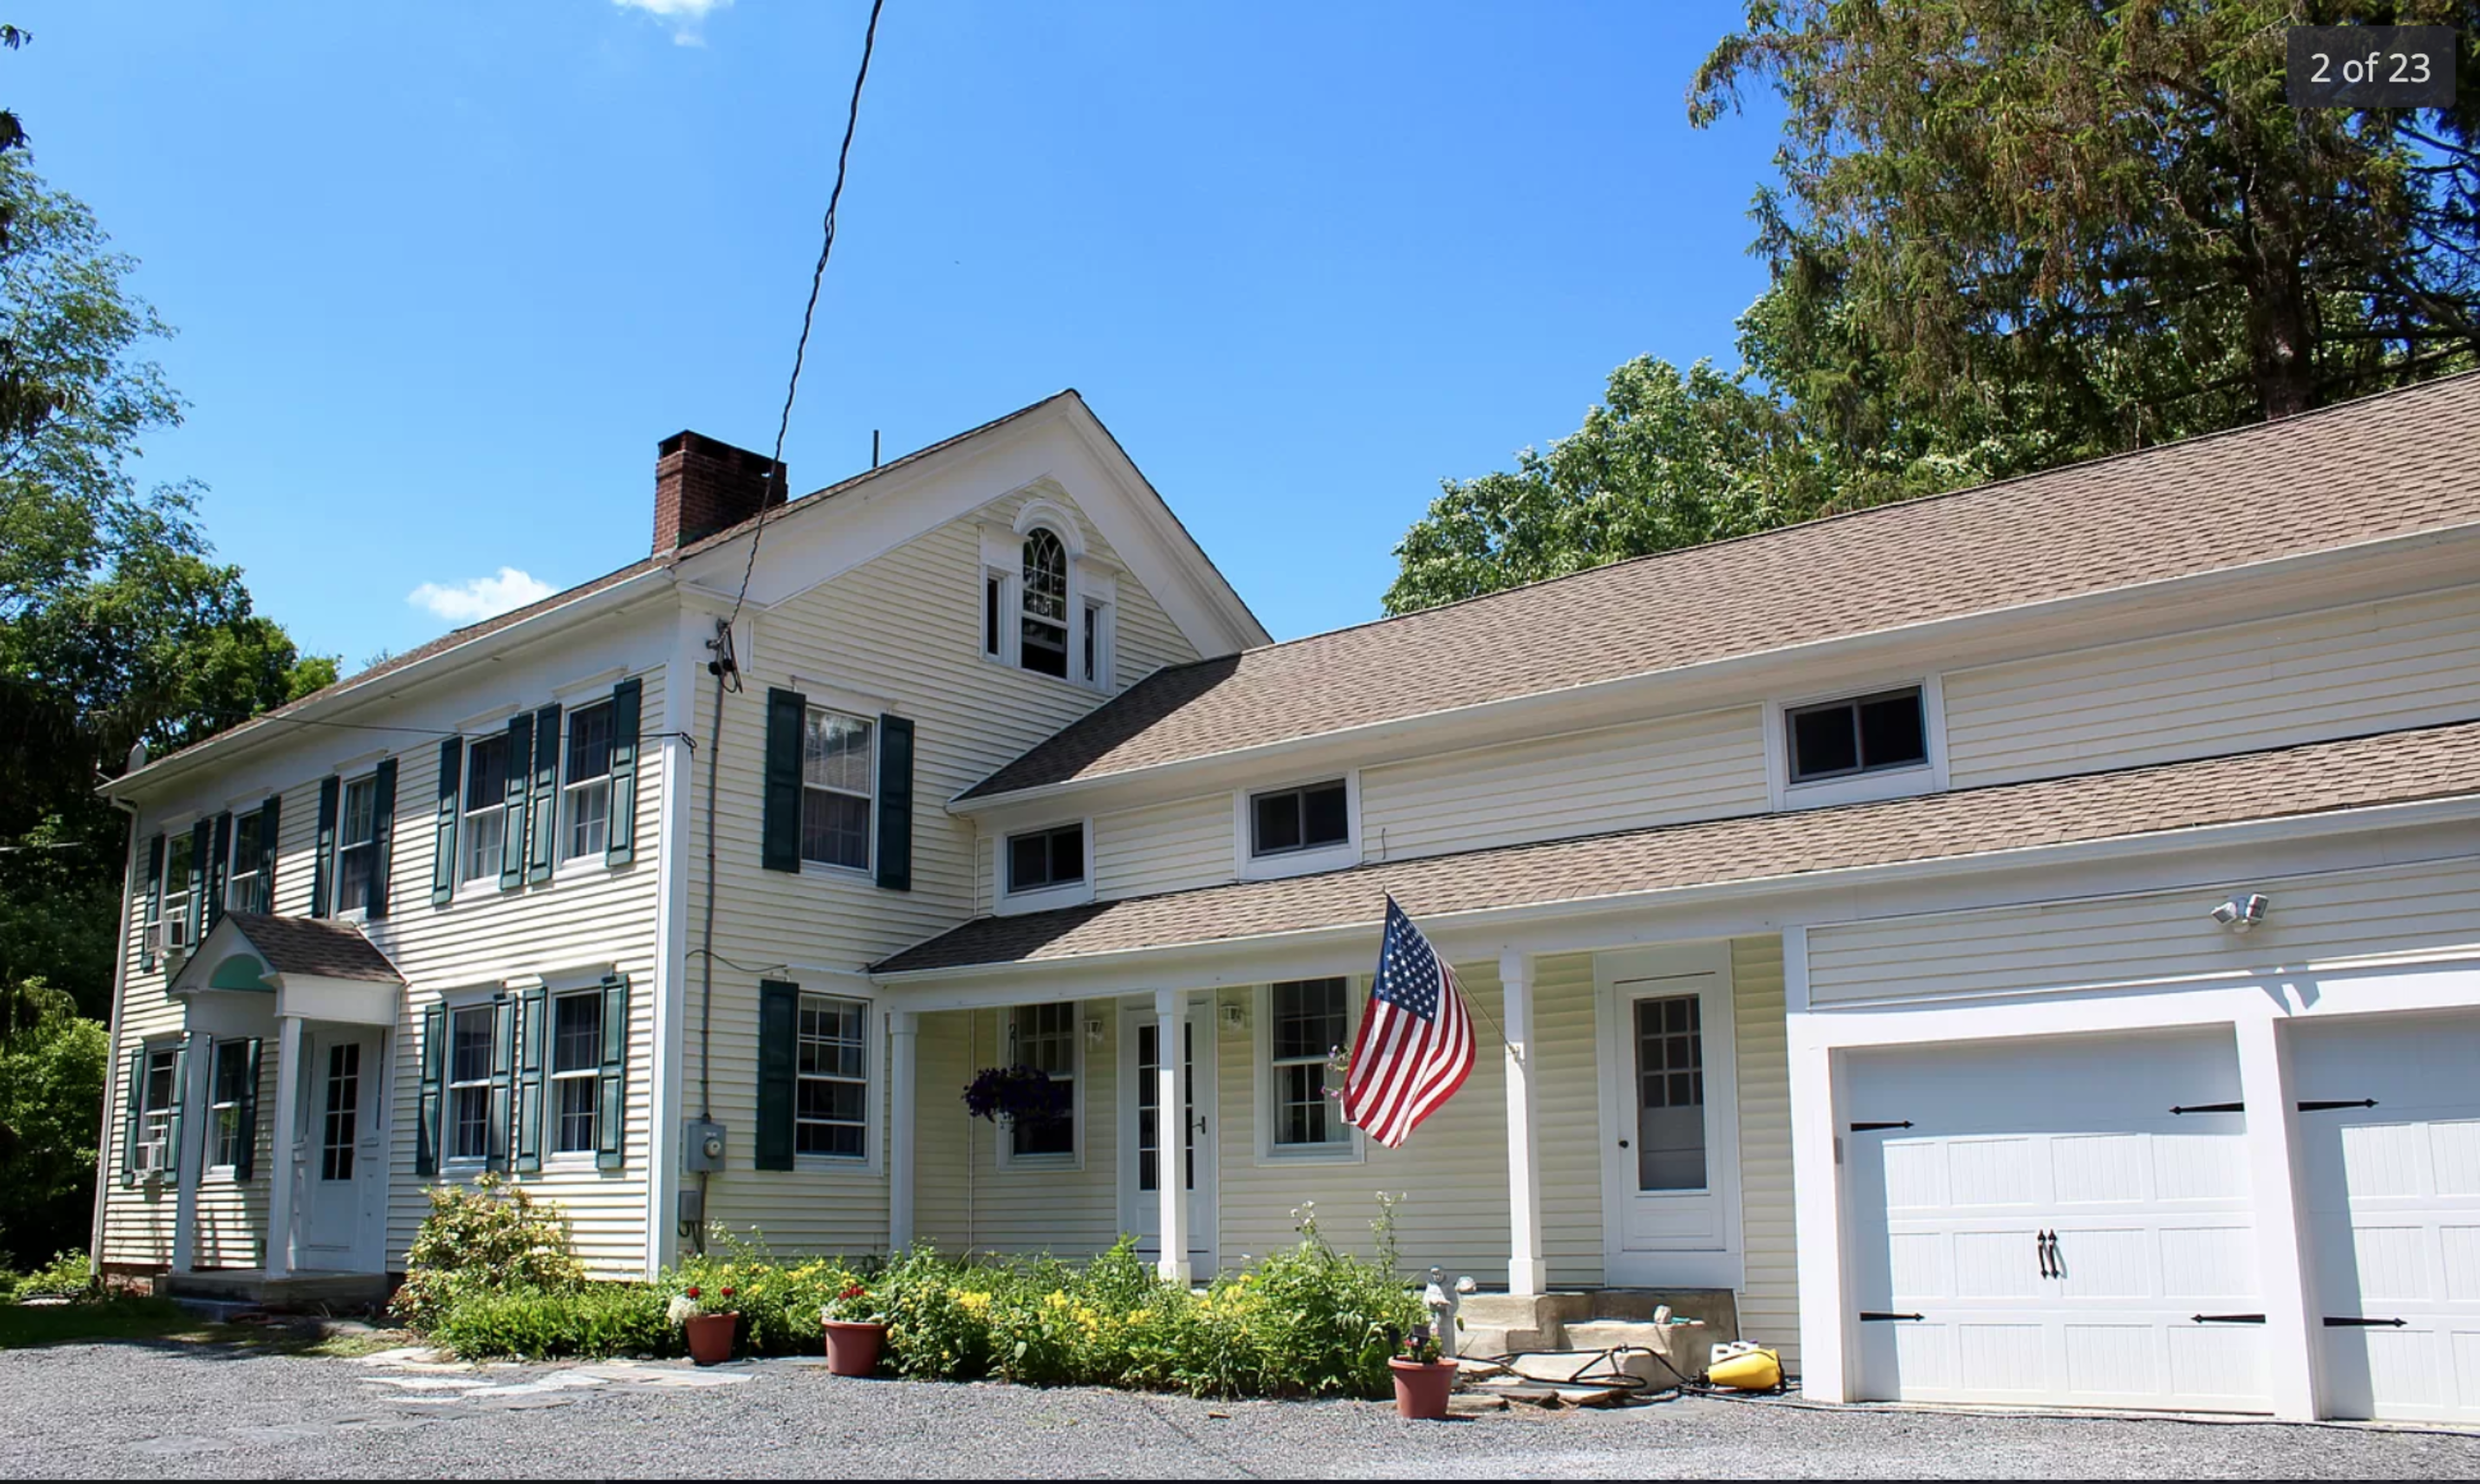 FEATURED LISTING:  Charming 1870's Farmhouse on 7.6 Beautiful Acres in Millerton NY  $395,000